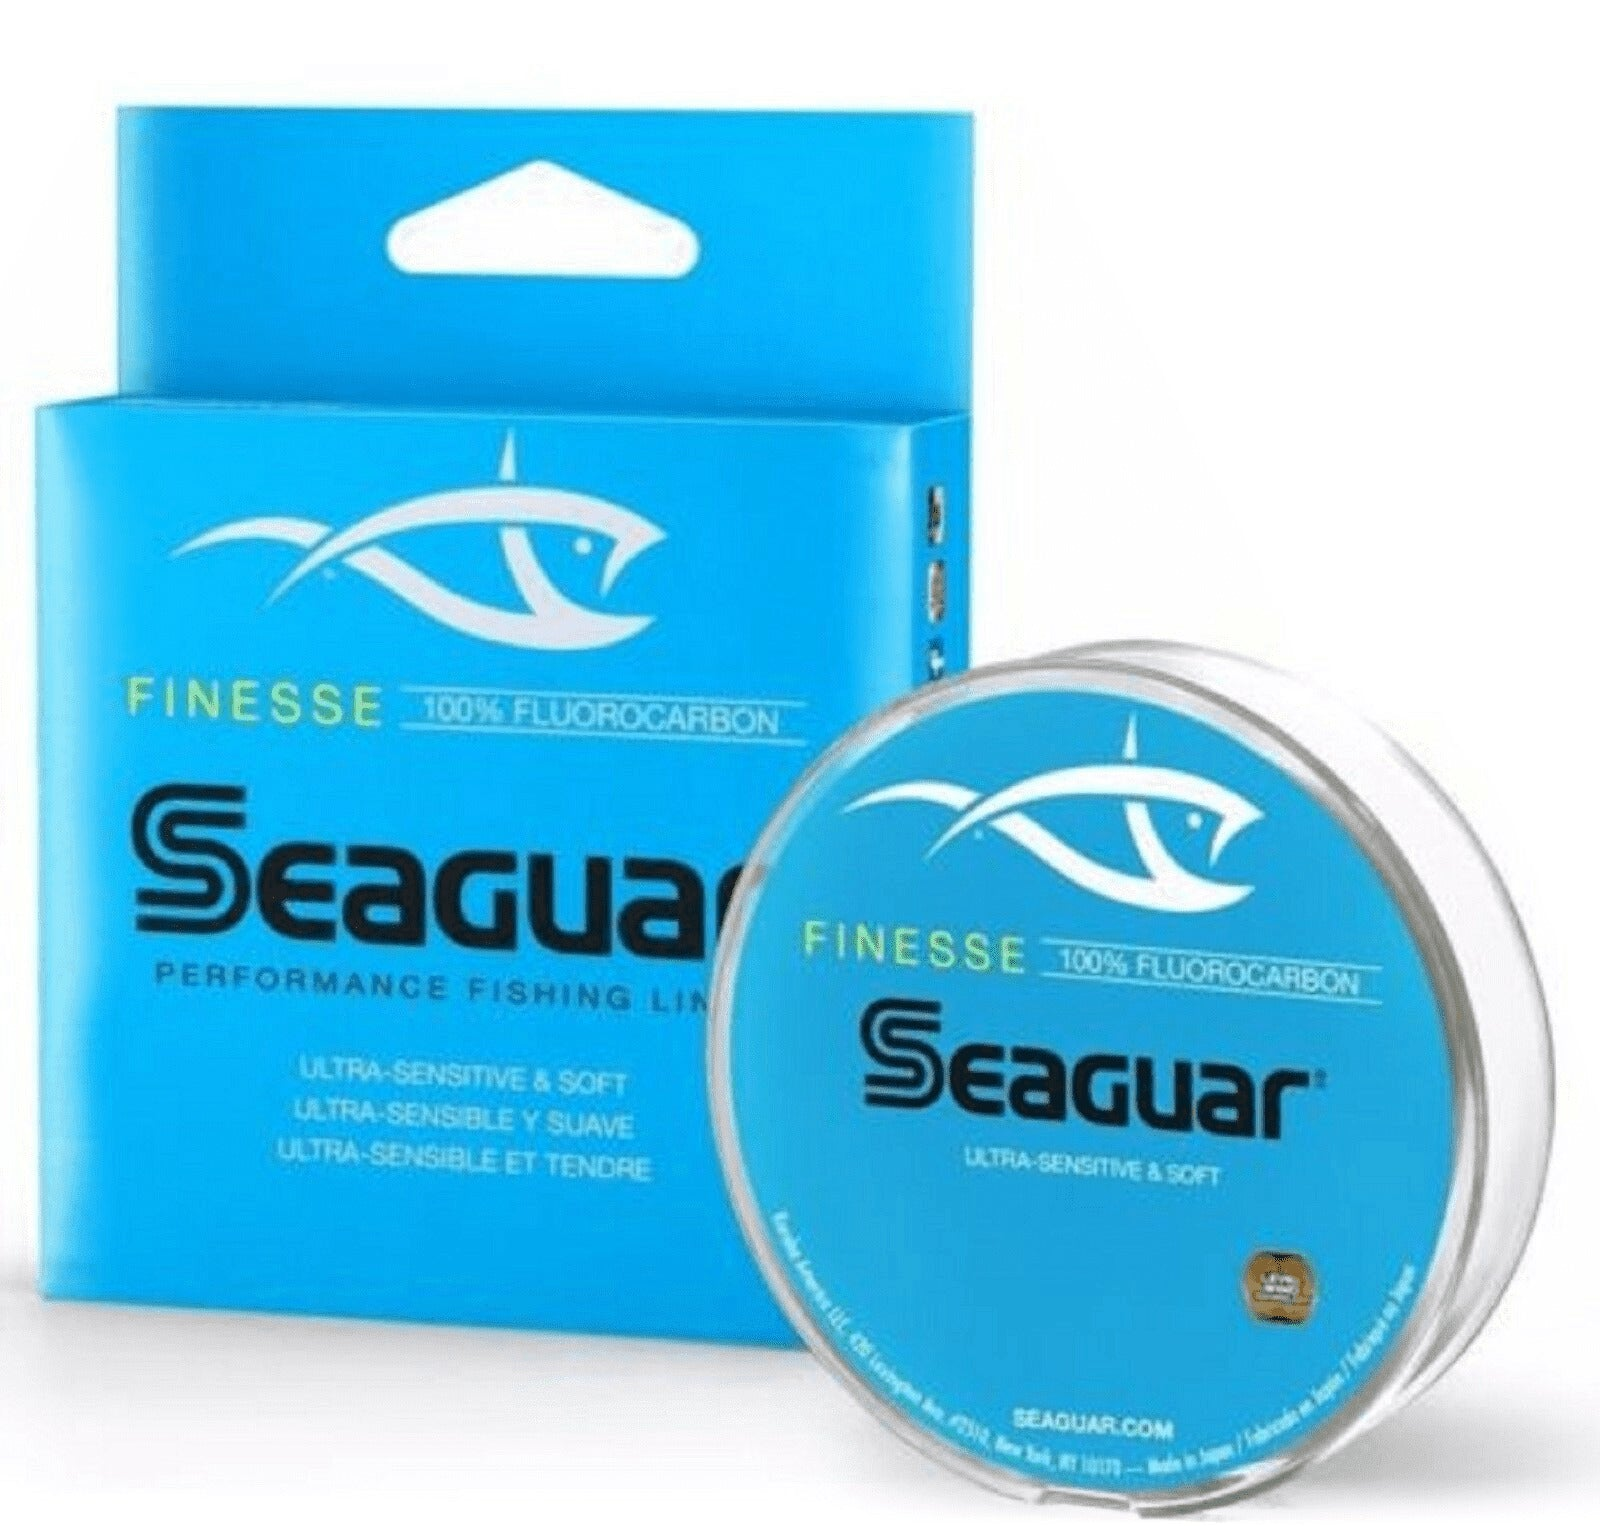 Seaguar Red Label Fluorocarbon Freshwater /& Saltwater Fishing Line 175-200 Yards